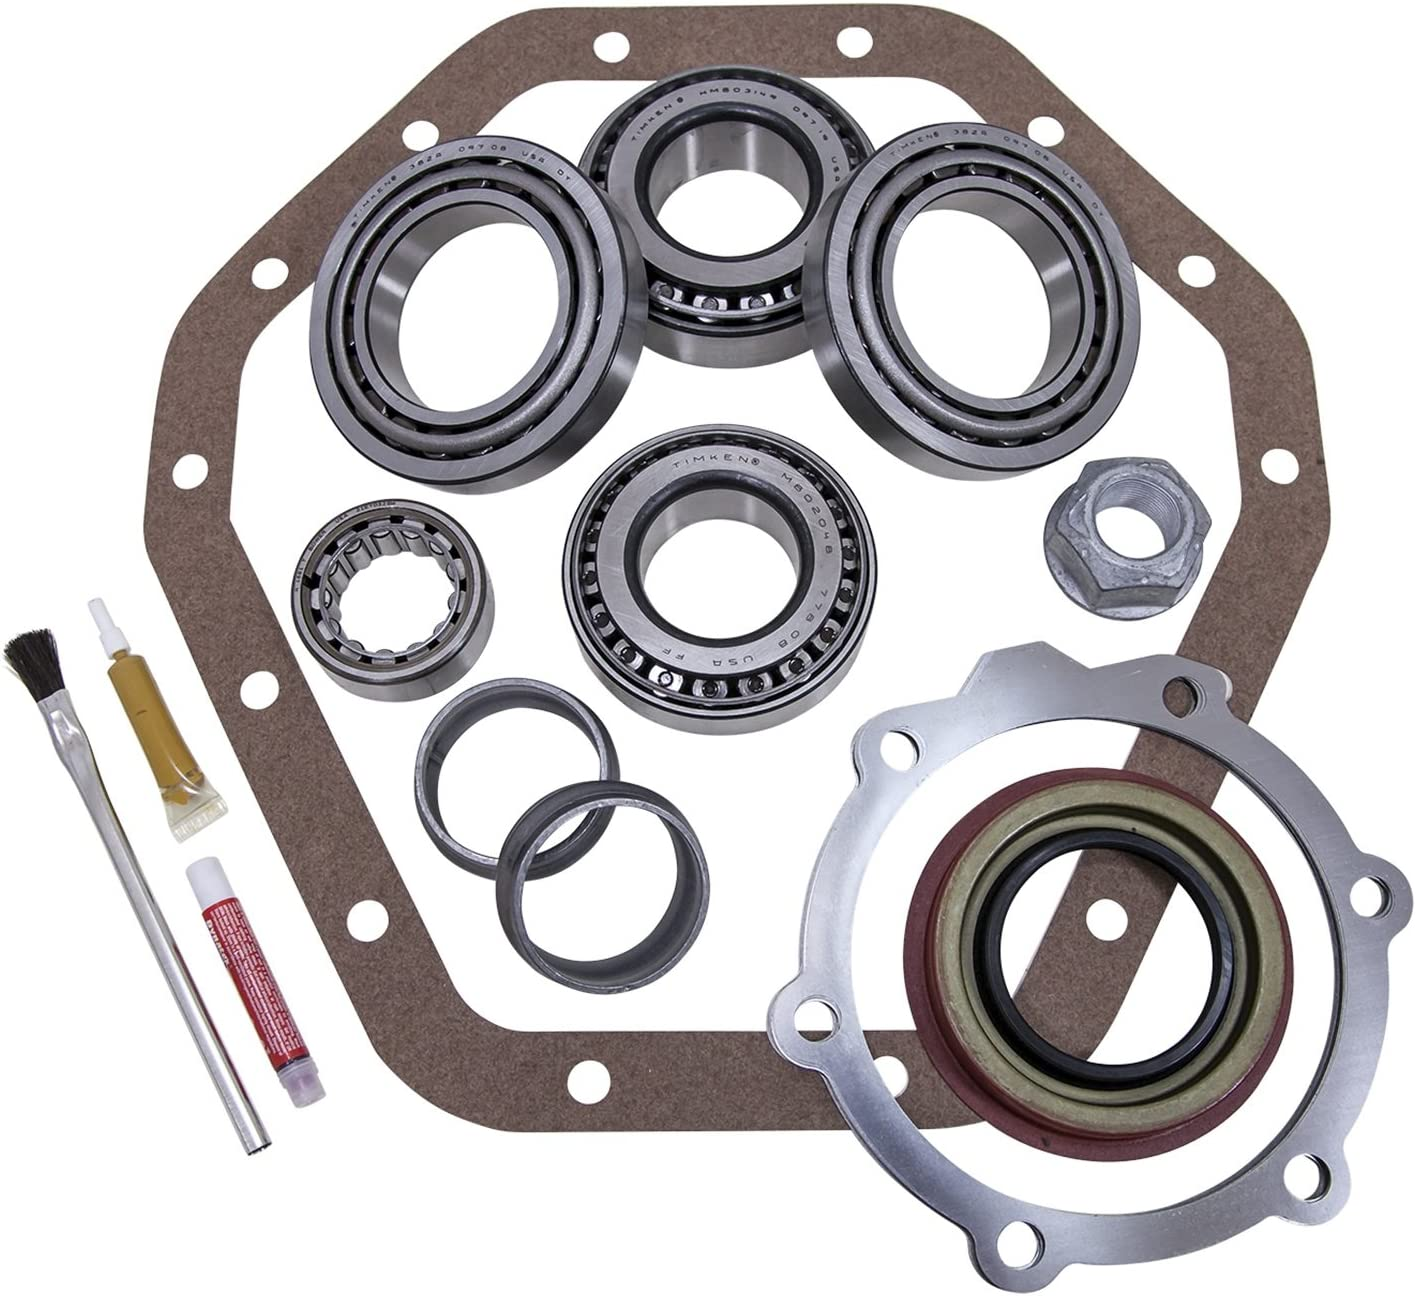 Master Overhaul Kit for GM 14-Bolt Truck 10.5 Differential USA Standard Gear ZK GM14T-A